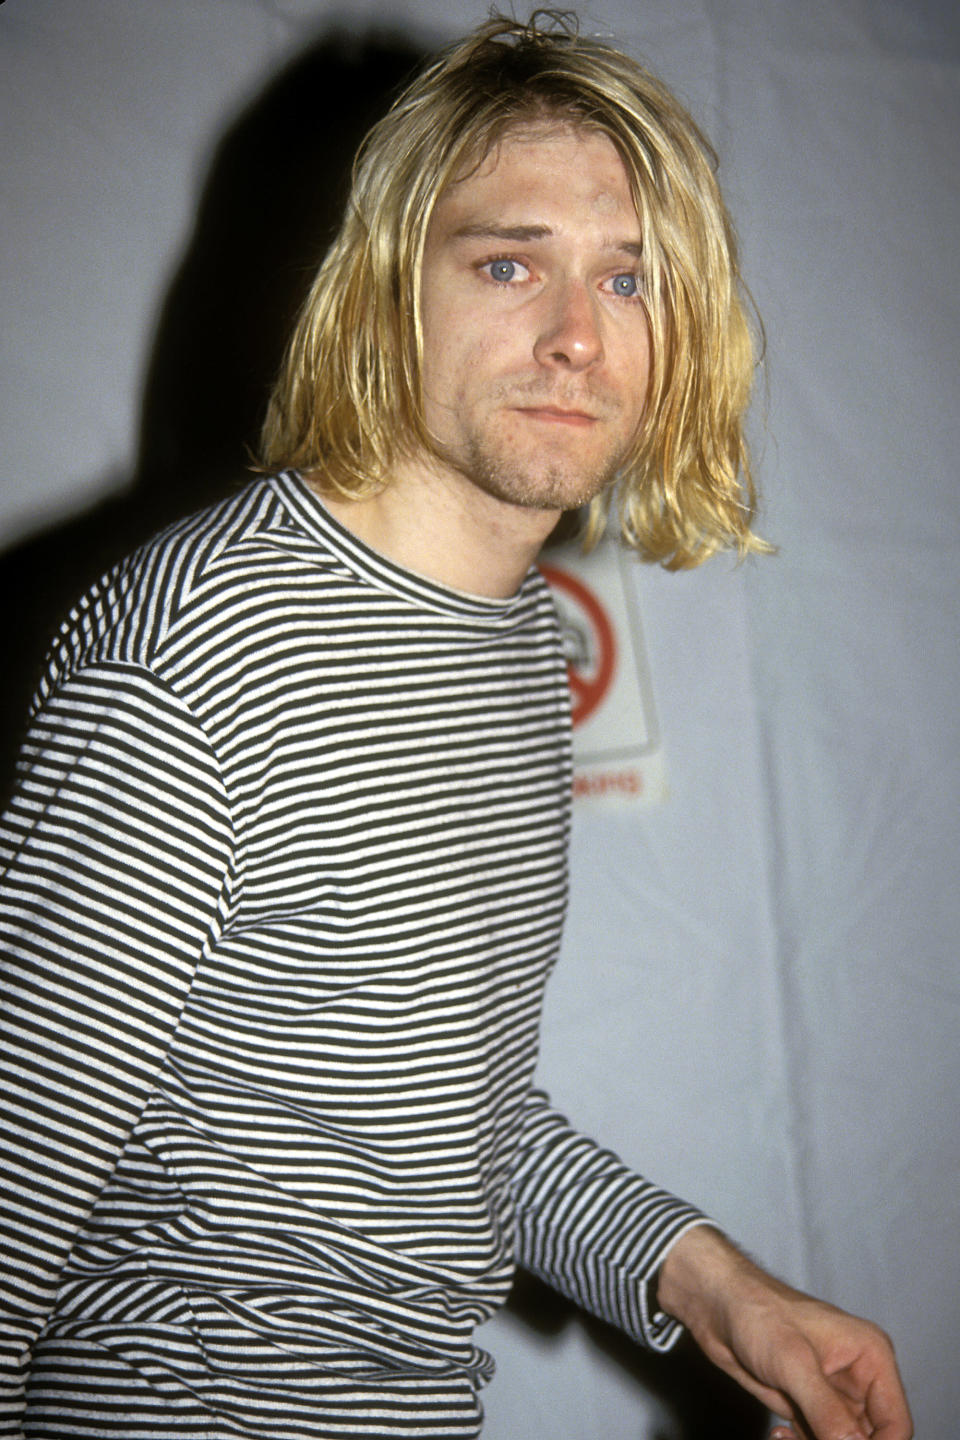 Kurt Cobain at the 1993 MTV Video Music Awards — a year before his death. (Photo: Vinnie Zuffante/Getty Images)